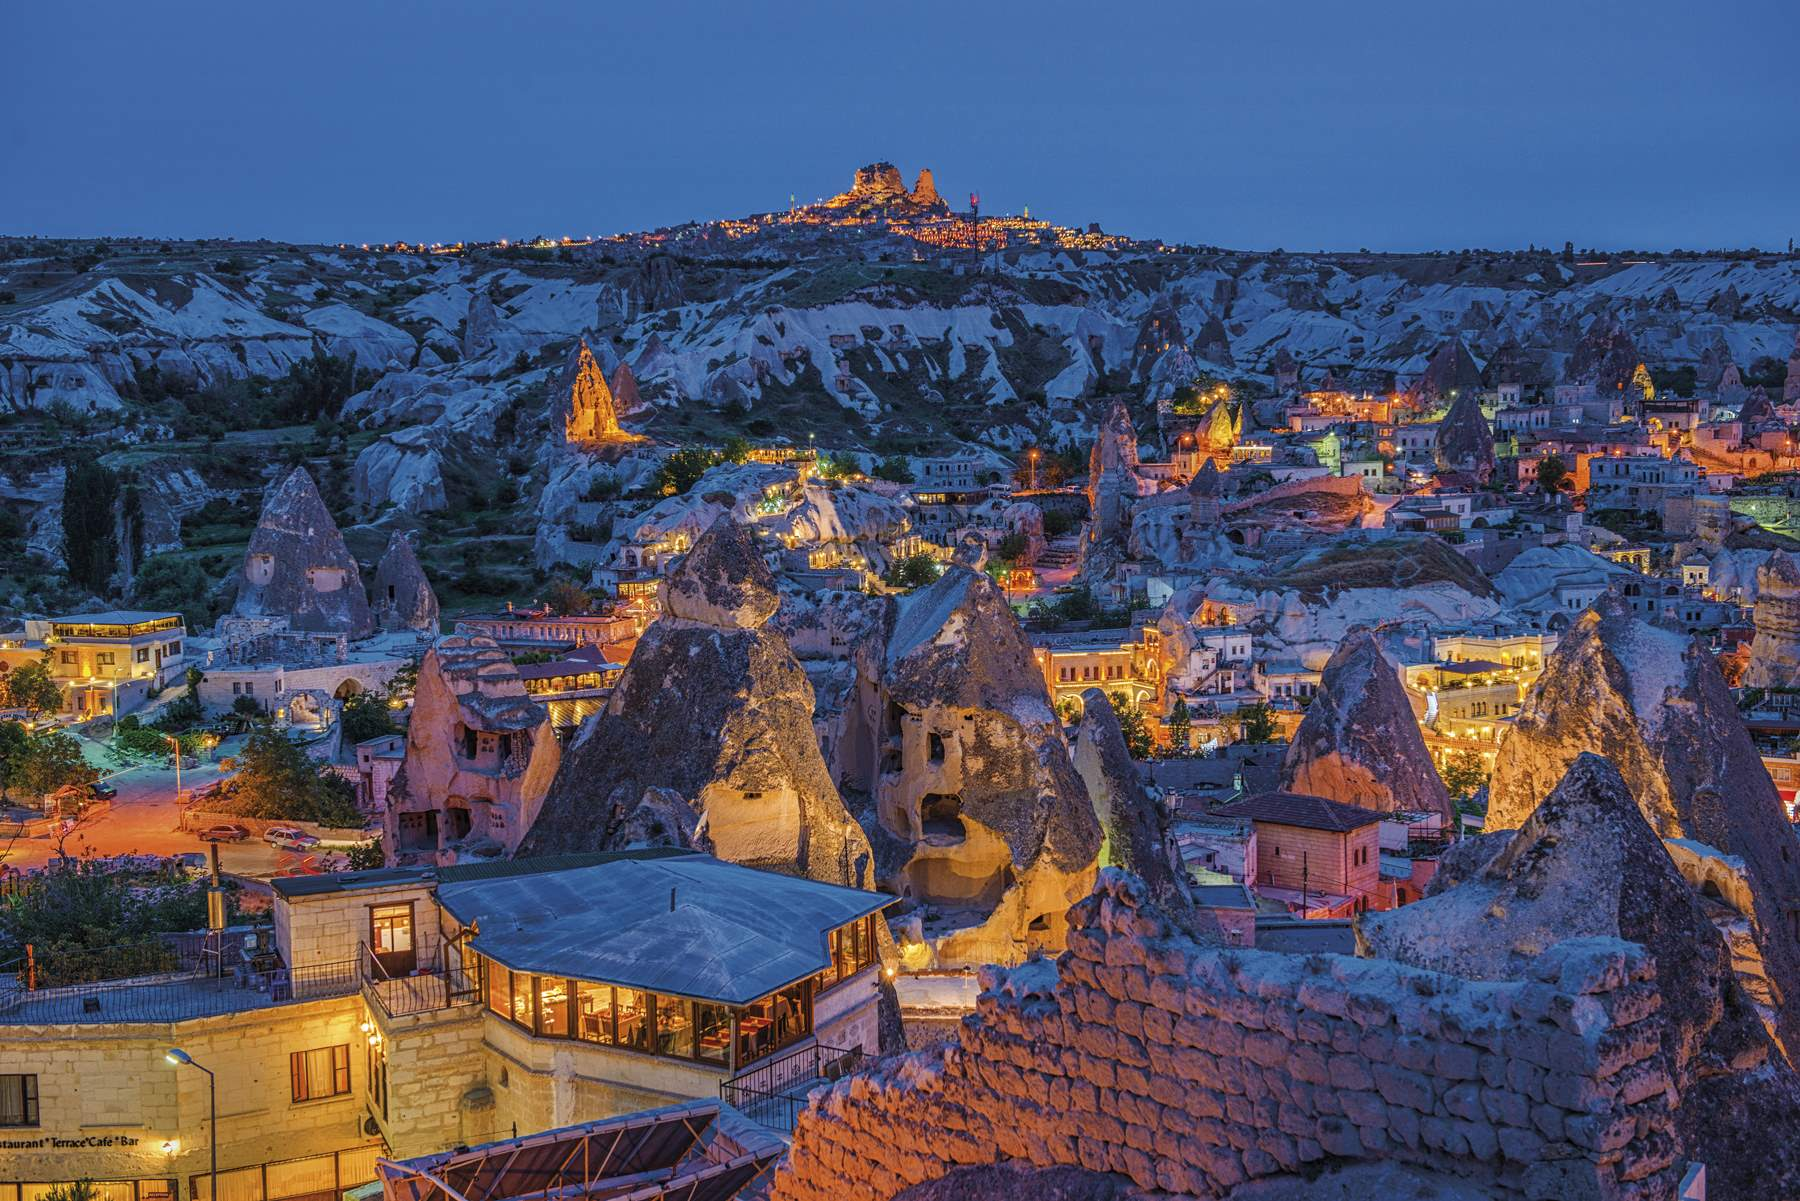 Goreme-GettyImages-456110291